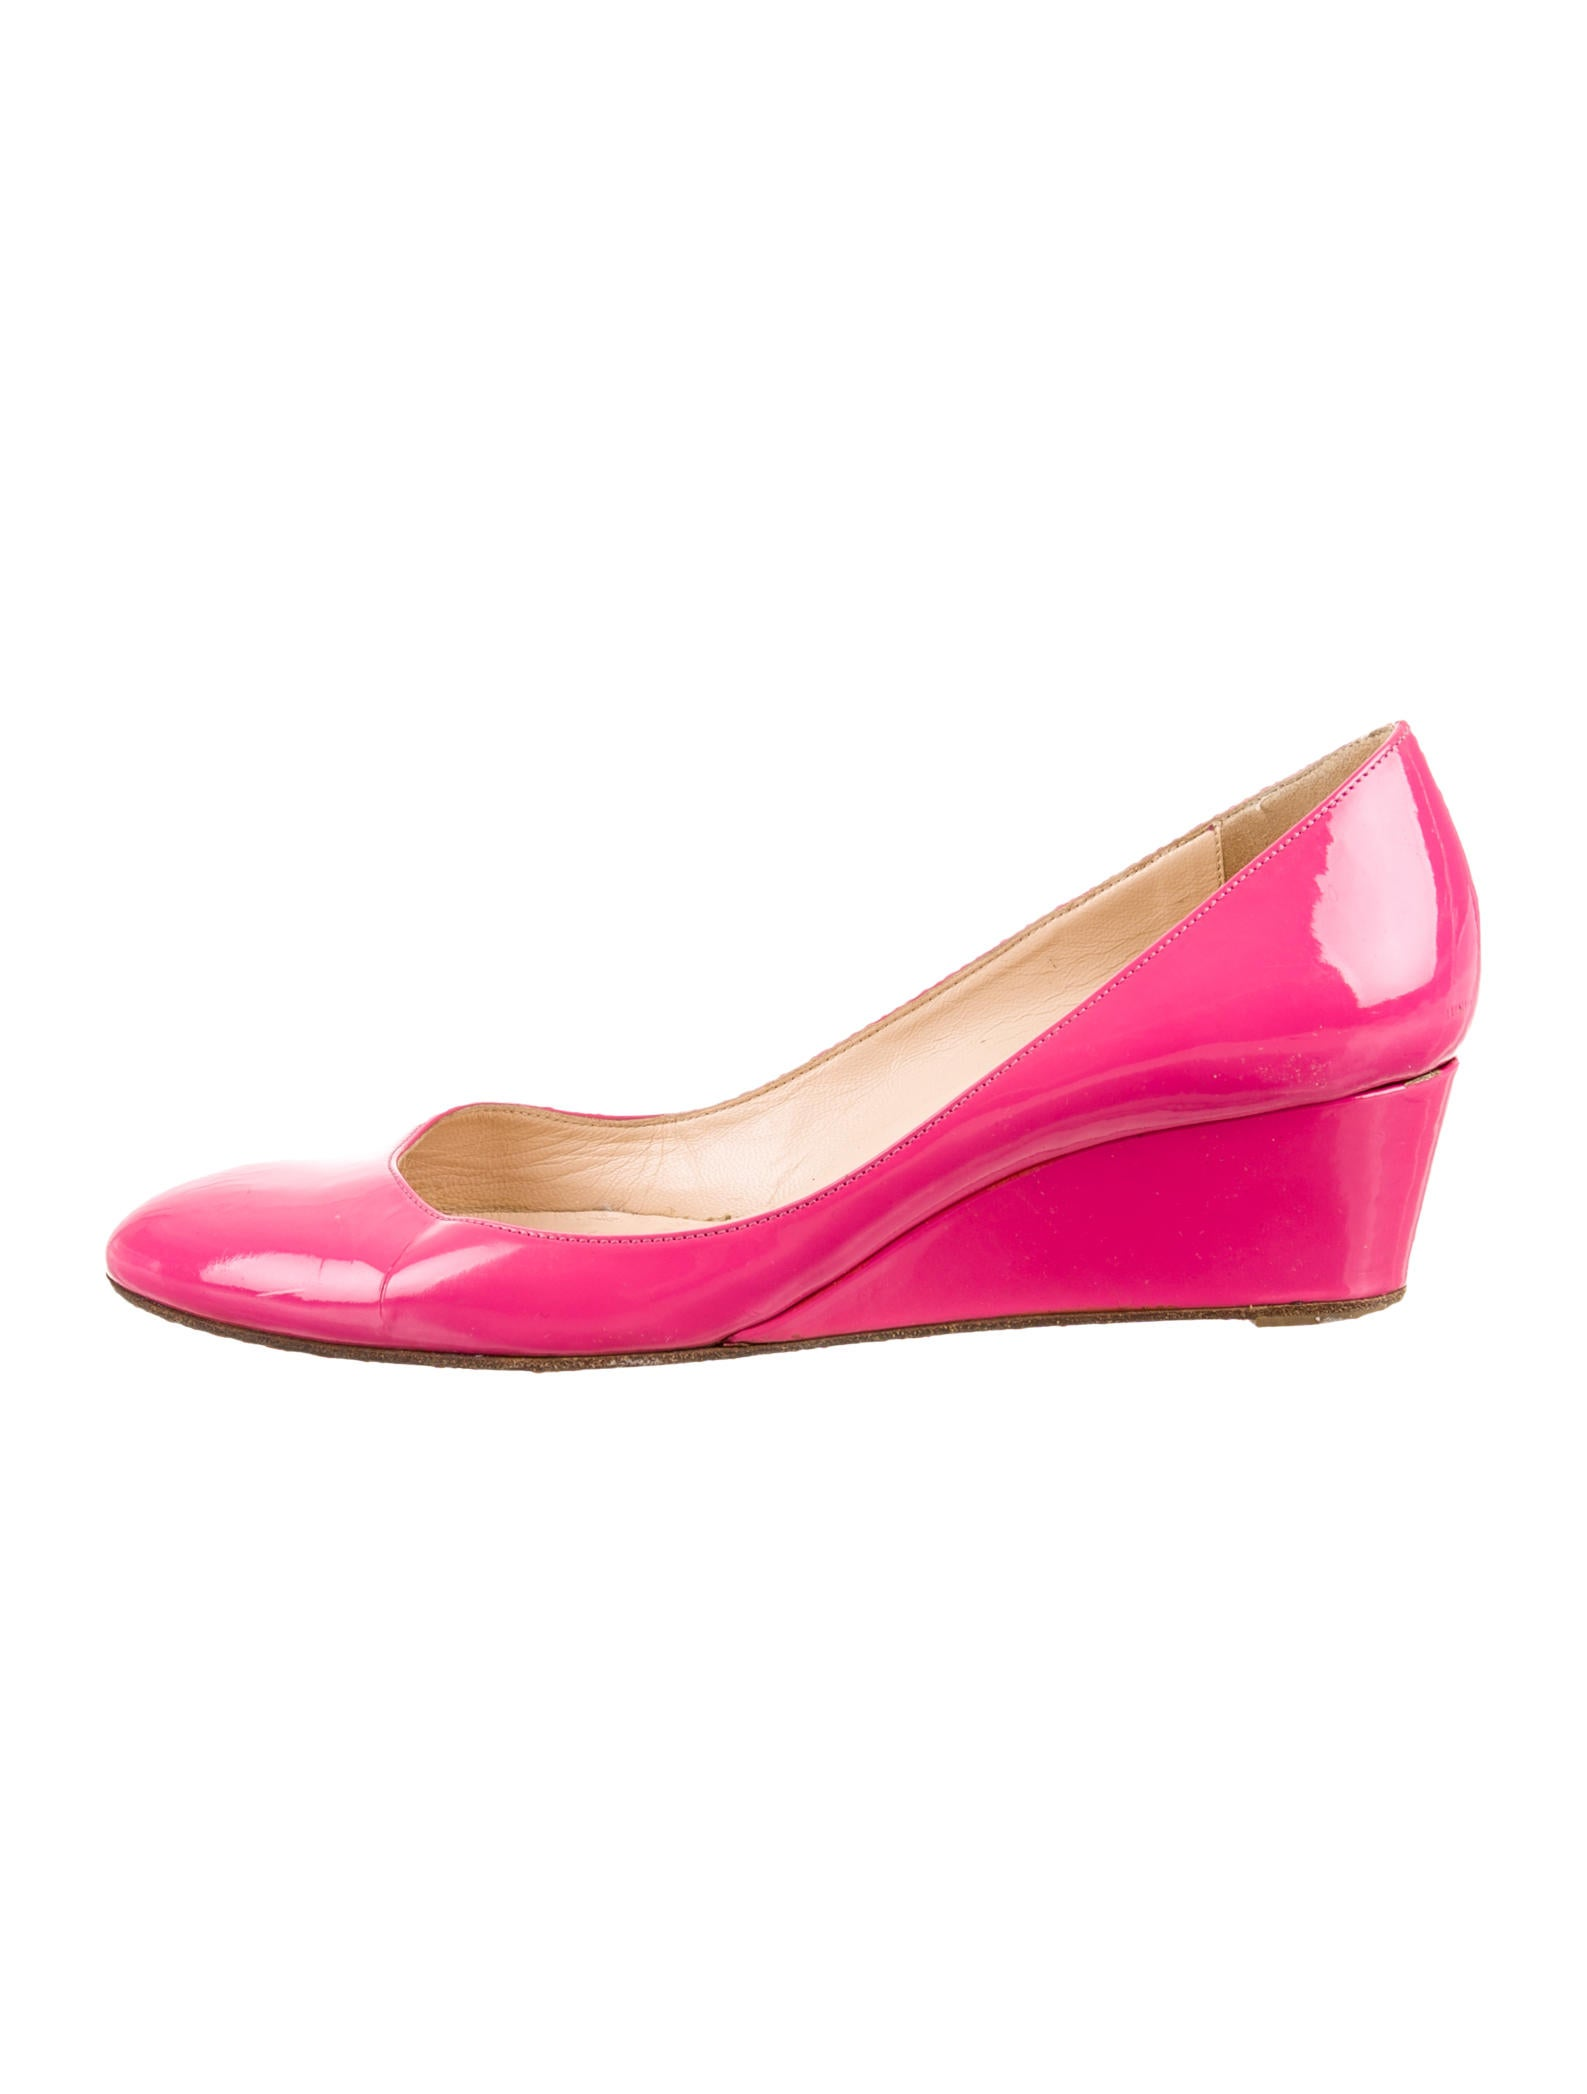 christian louboutin round-toe wedges Pink patent leather | The ...